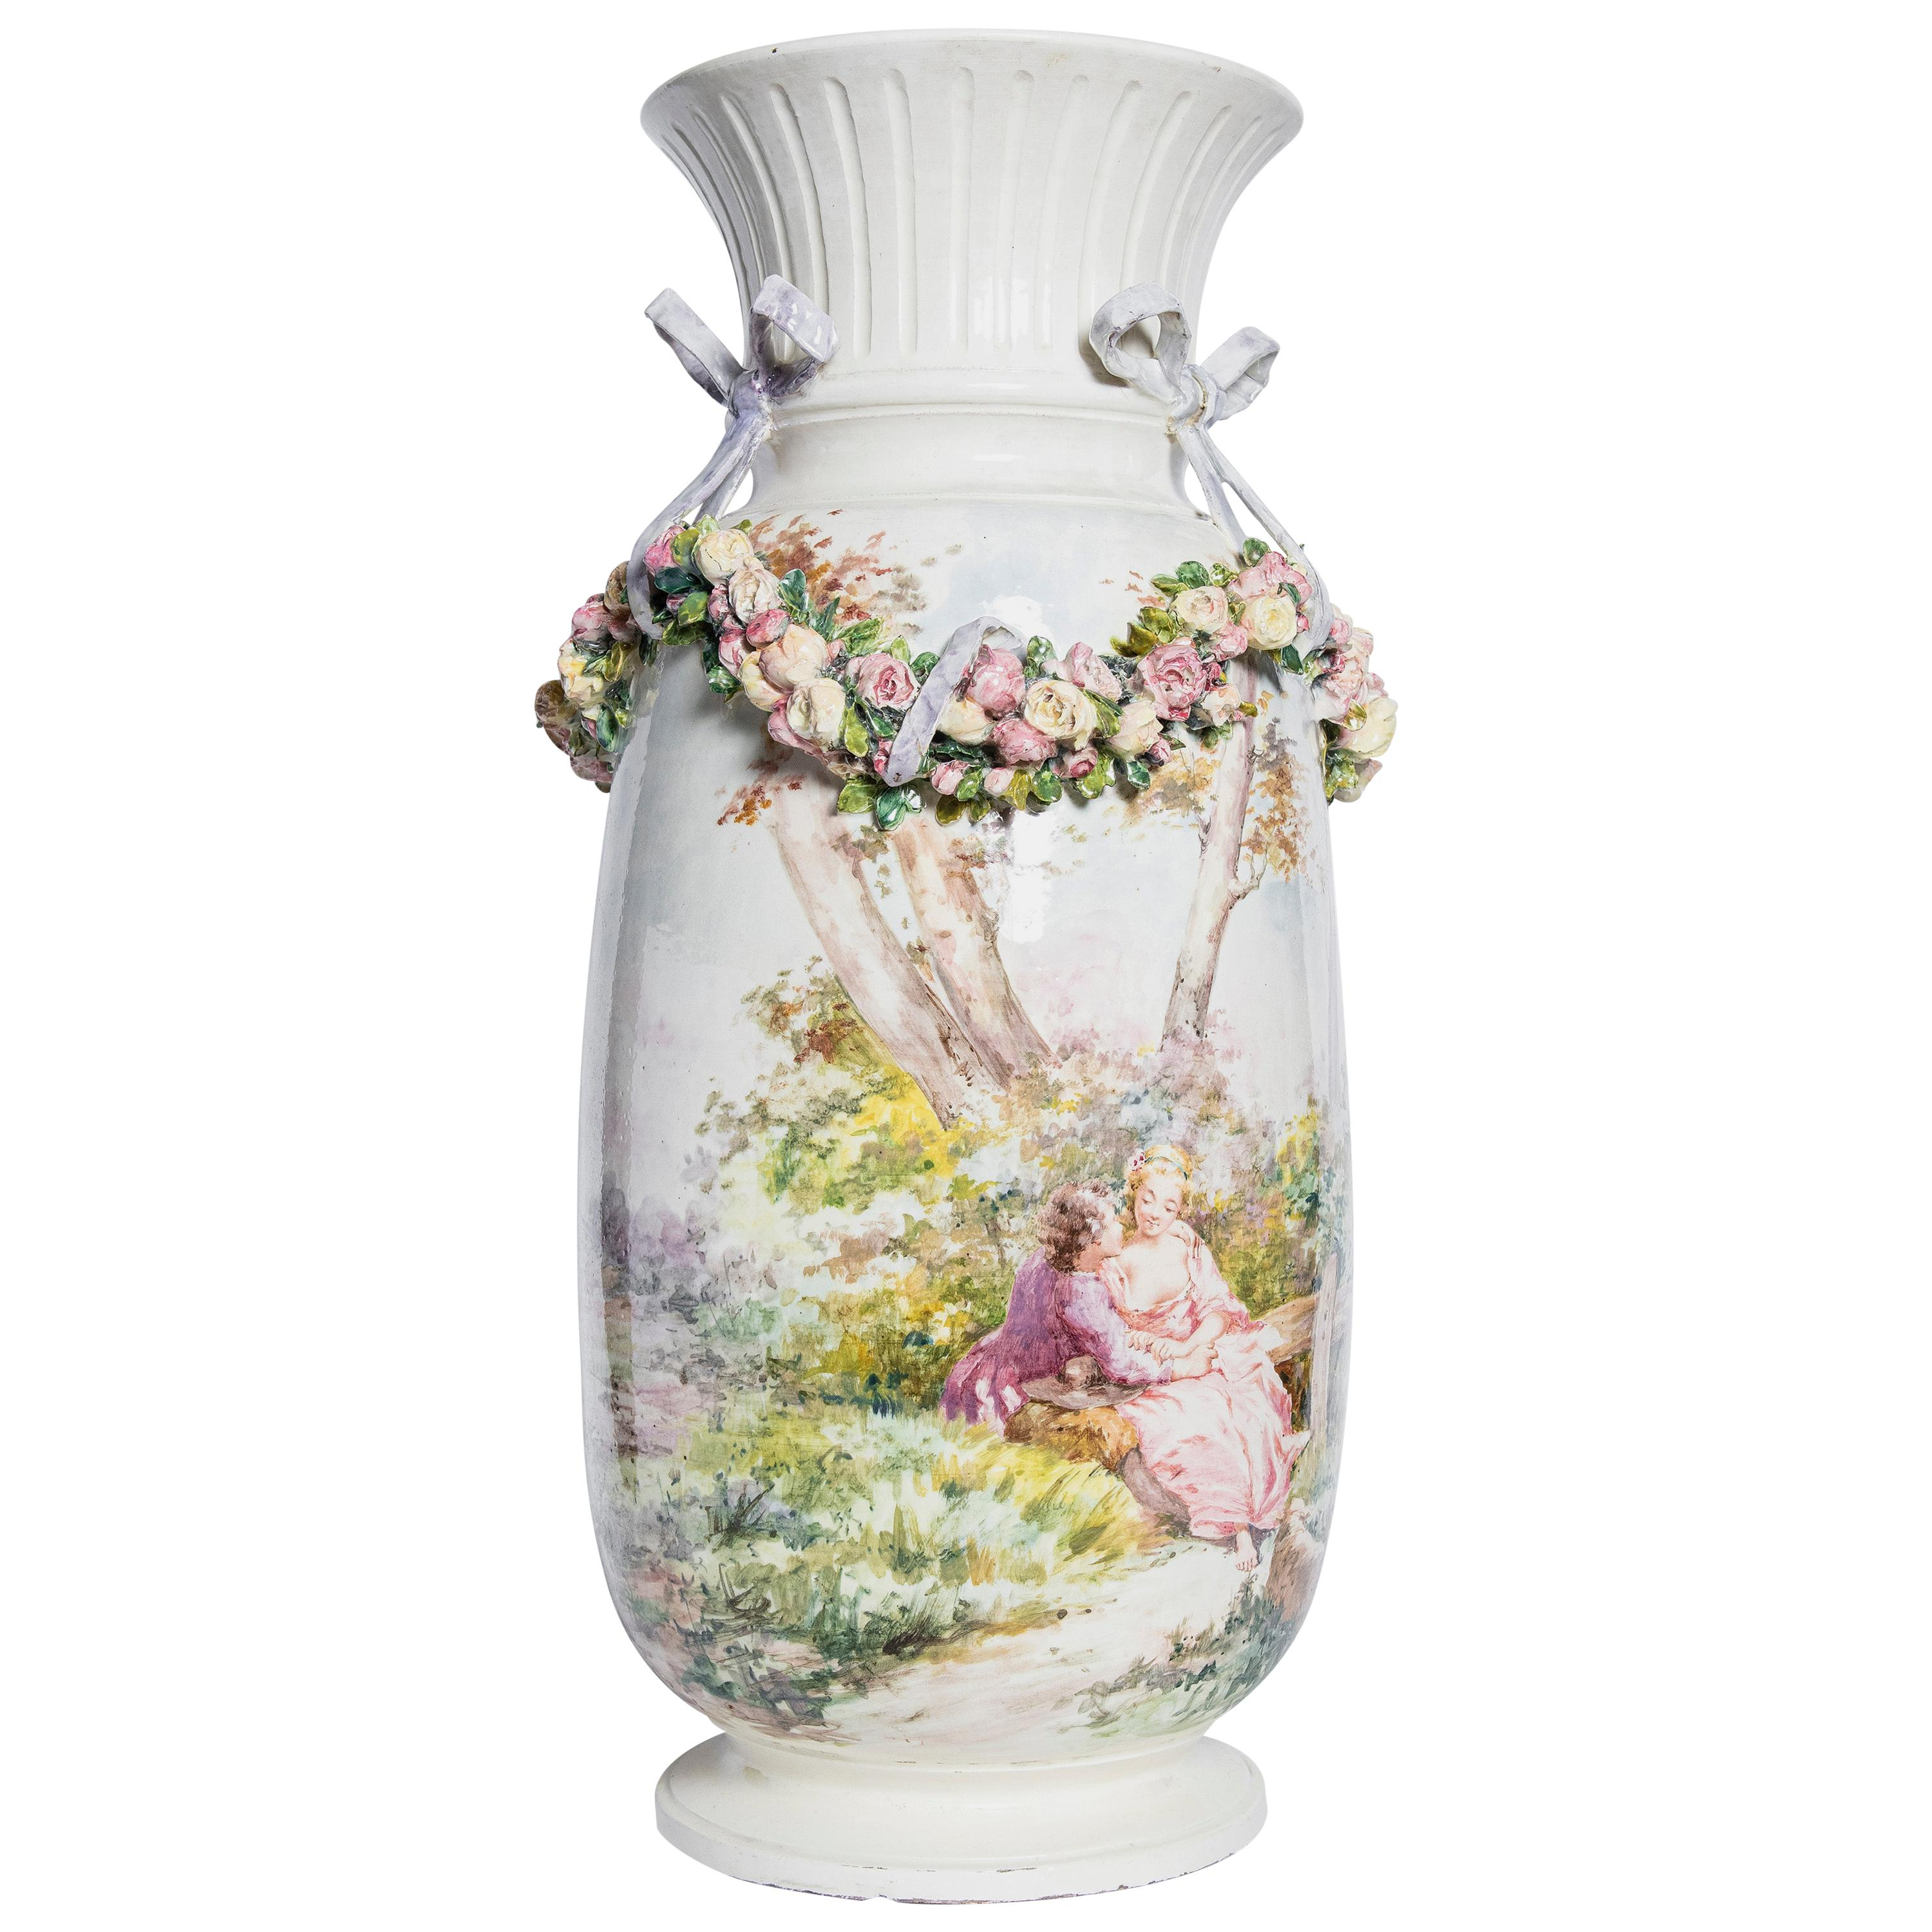 Porcelain Vase, Rococo Style, France, Late 19th Century